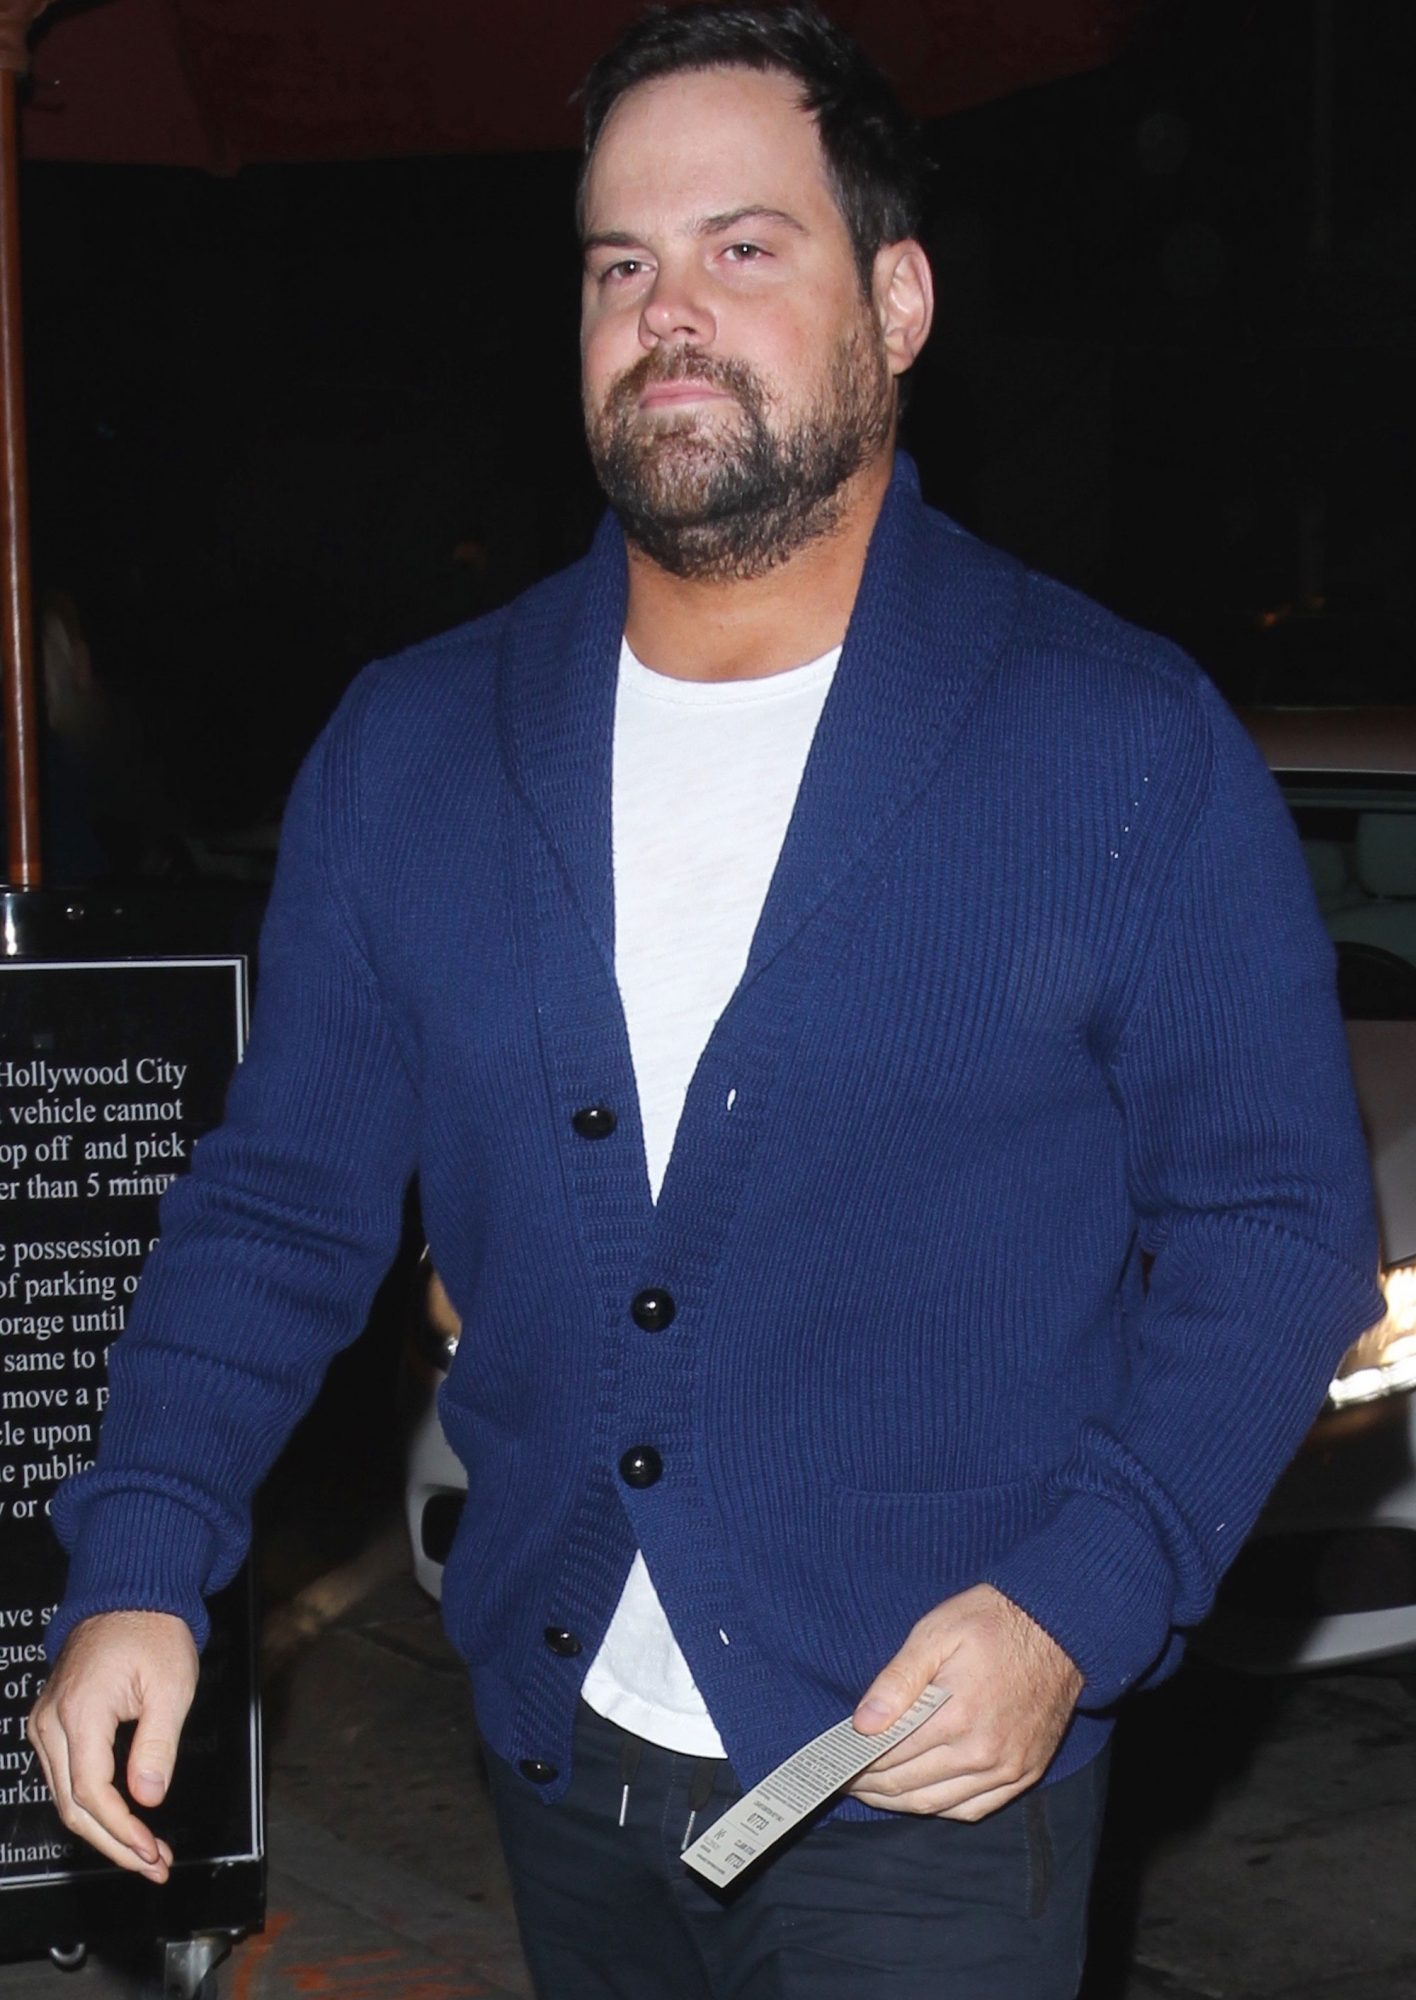 Hockey player and ex husband of Hilary Duff, Mike Comrie is seen alone at 'Craig's' restaurant in Los Angeles